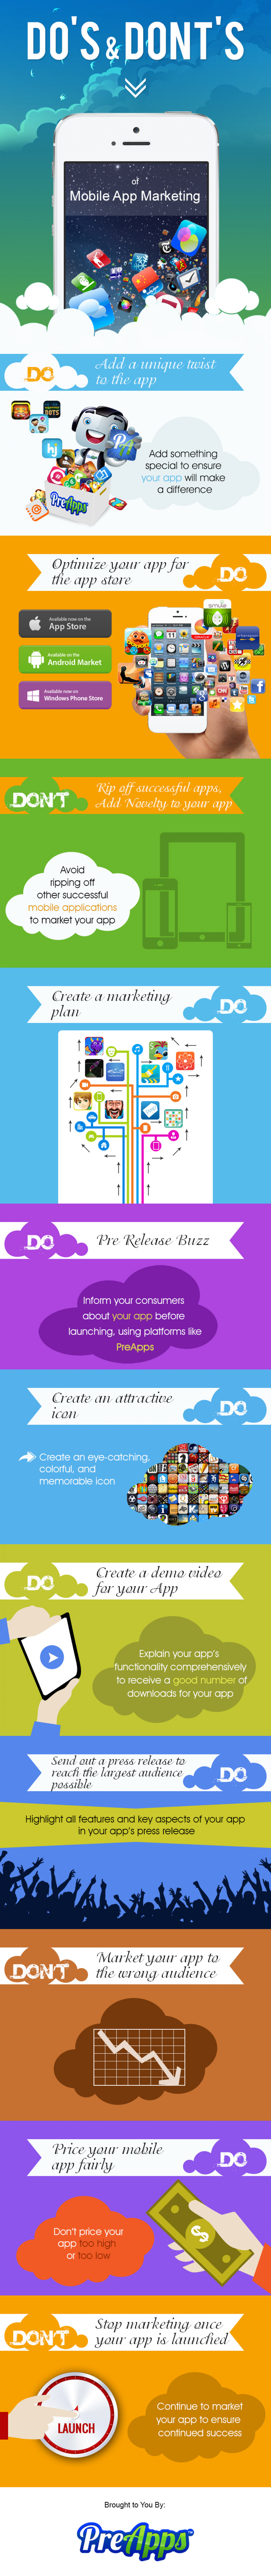 Do's & Dont's of Mobile App Marketing Infographic